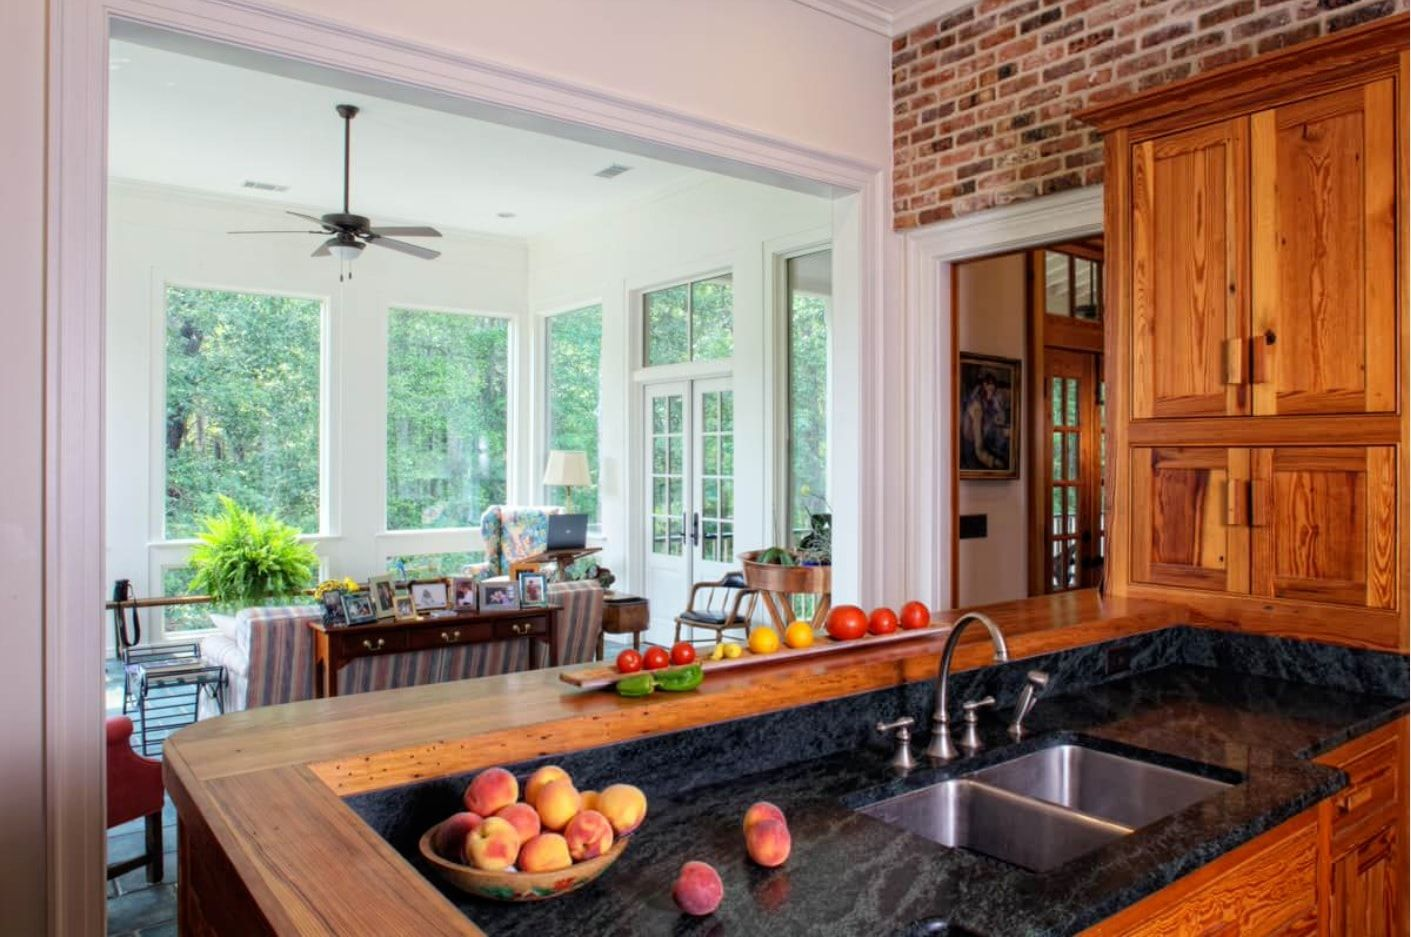 Kitchen joined with balcony in different interior decoration styles